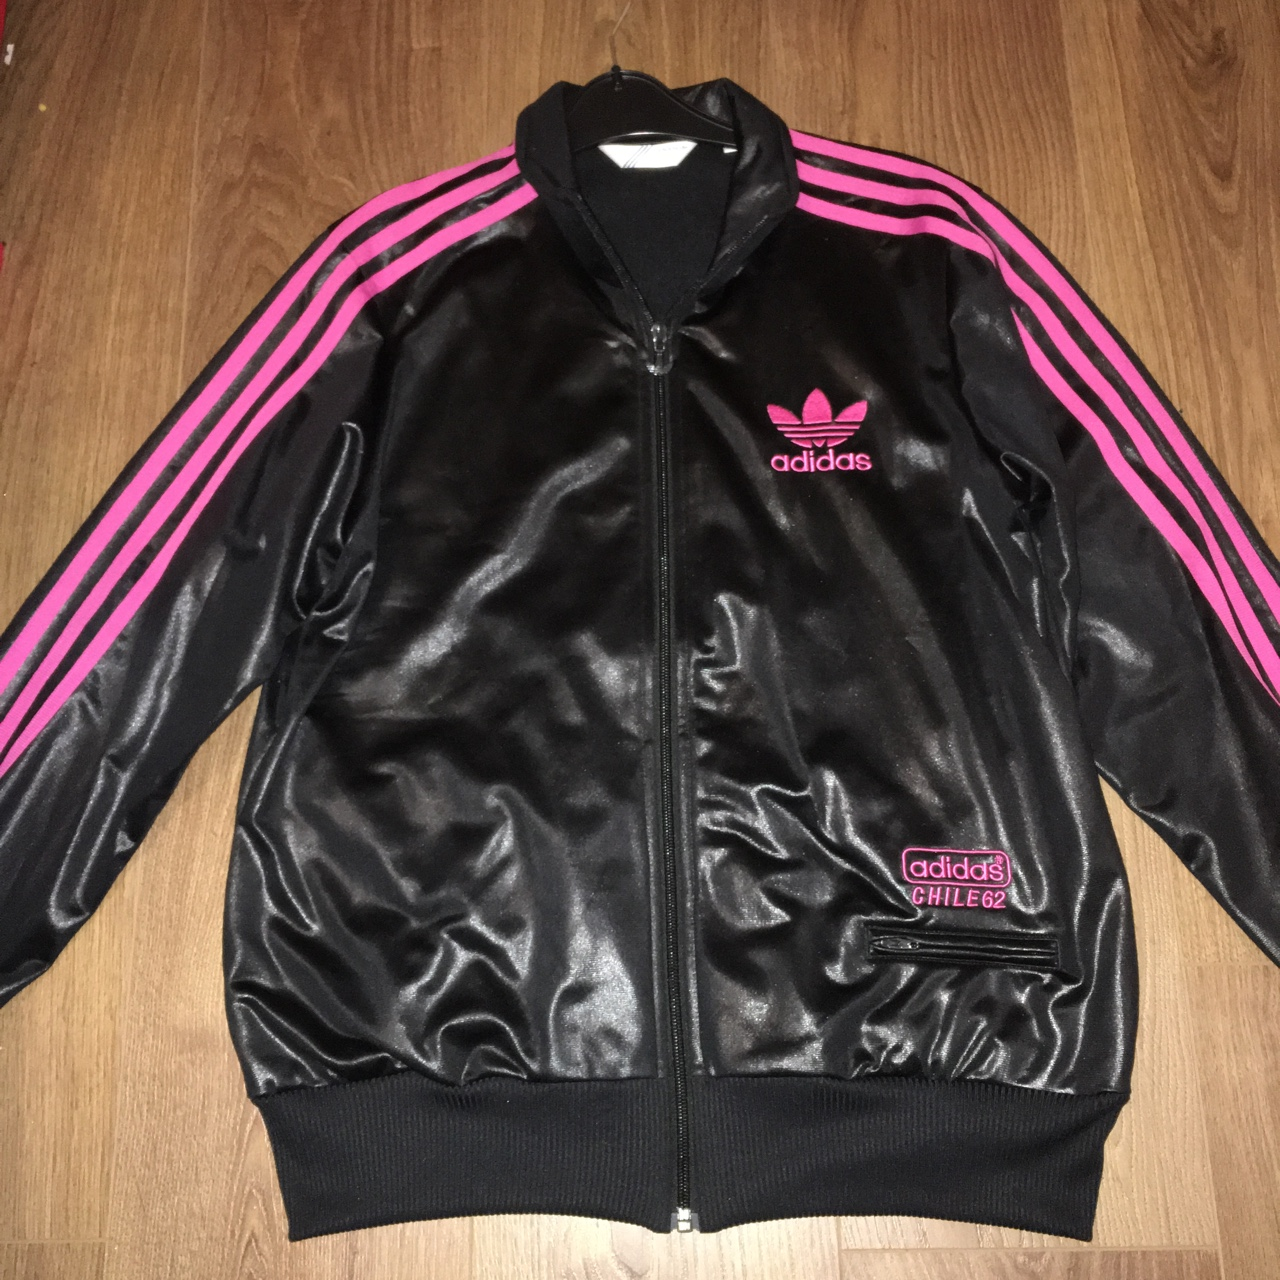 Adidas Originals Chile 62 Vintage Jacket Black & Depop